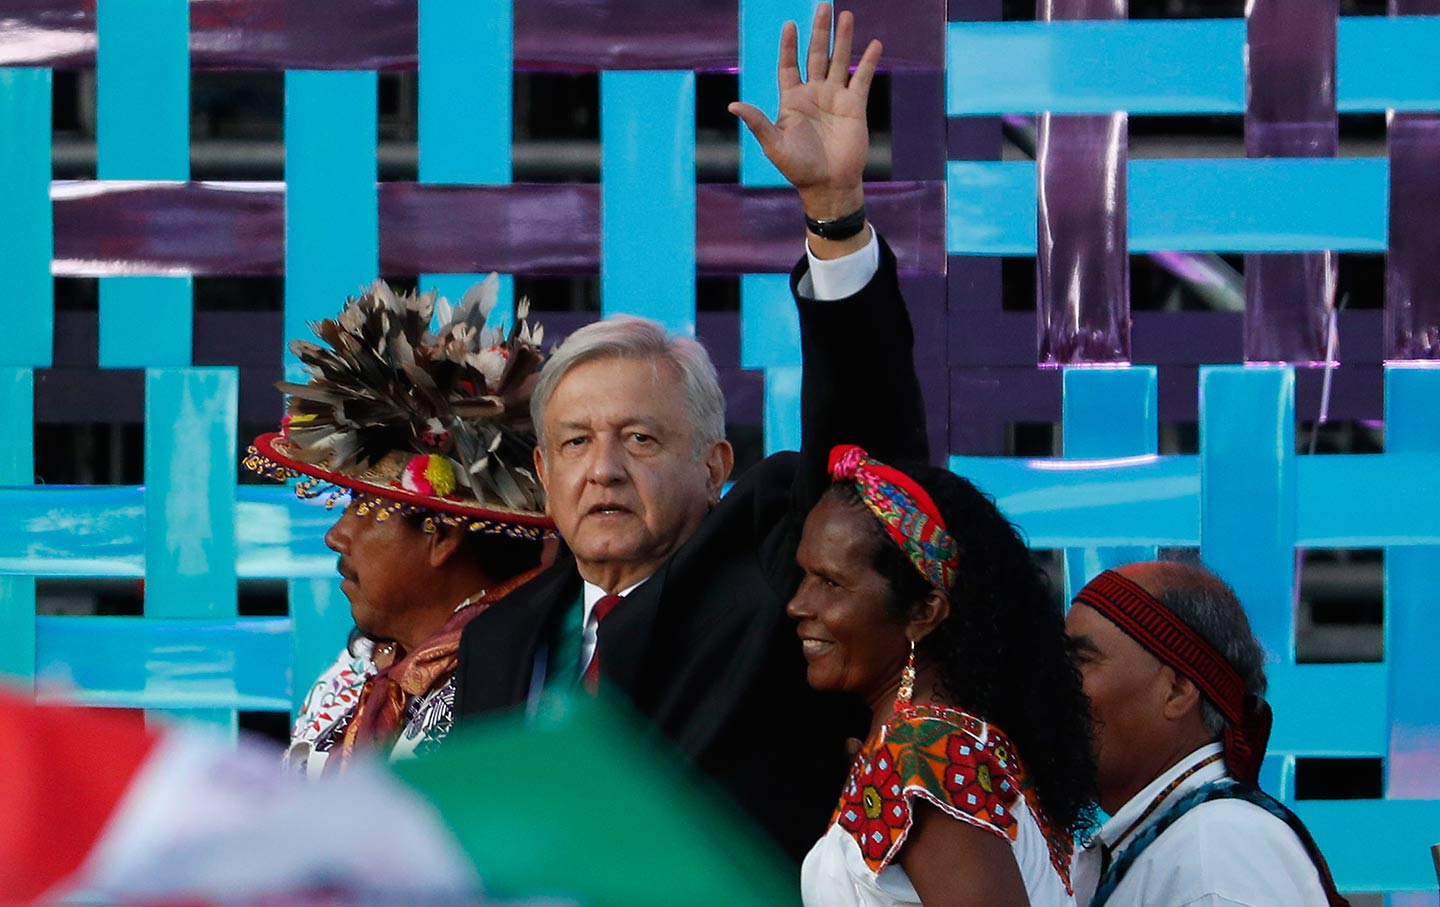 AMLO inauguration in Mexico